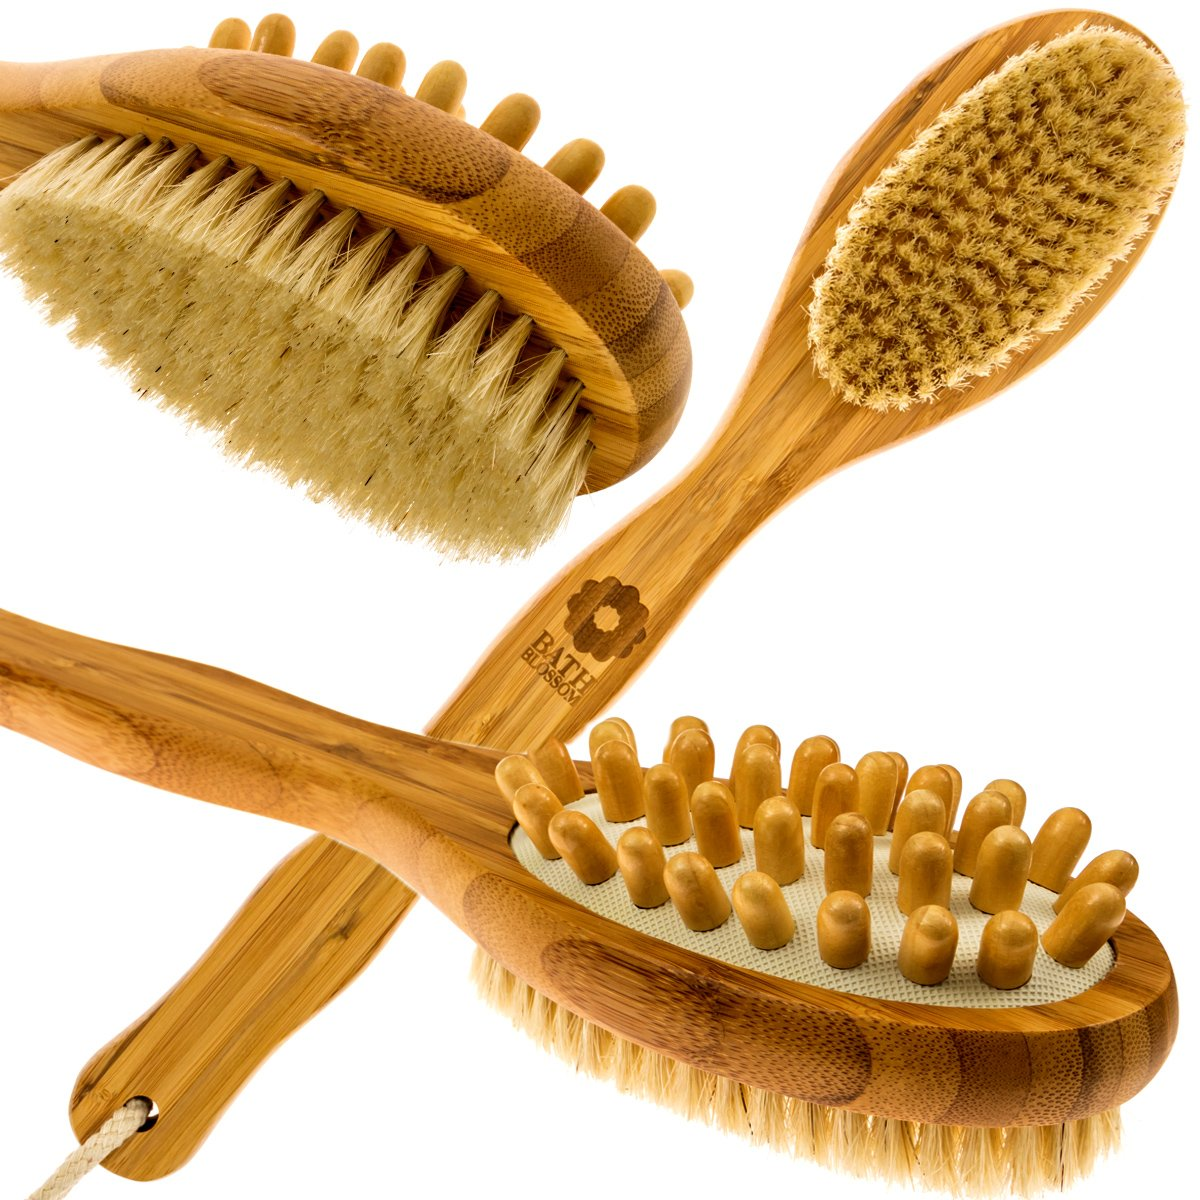 Bath Blossom Bamboo Body Brush for Back Scrubber - Natural Bristles Shower Brush with Long Handle - Excellent for Exfoliating Skin and Cellulite - Use Wet or Dry Brushing - Suitable for Men and Women Blossom Innovations